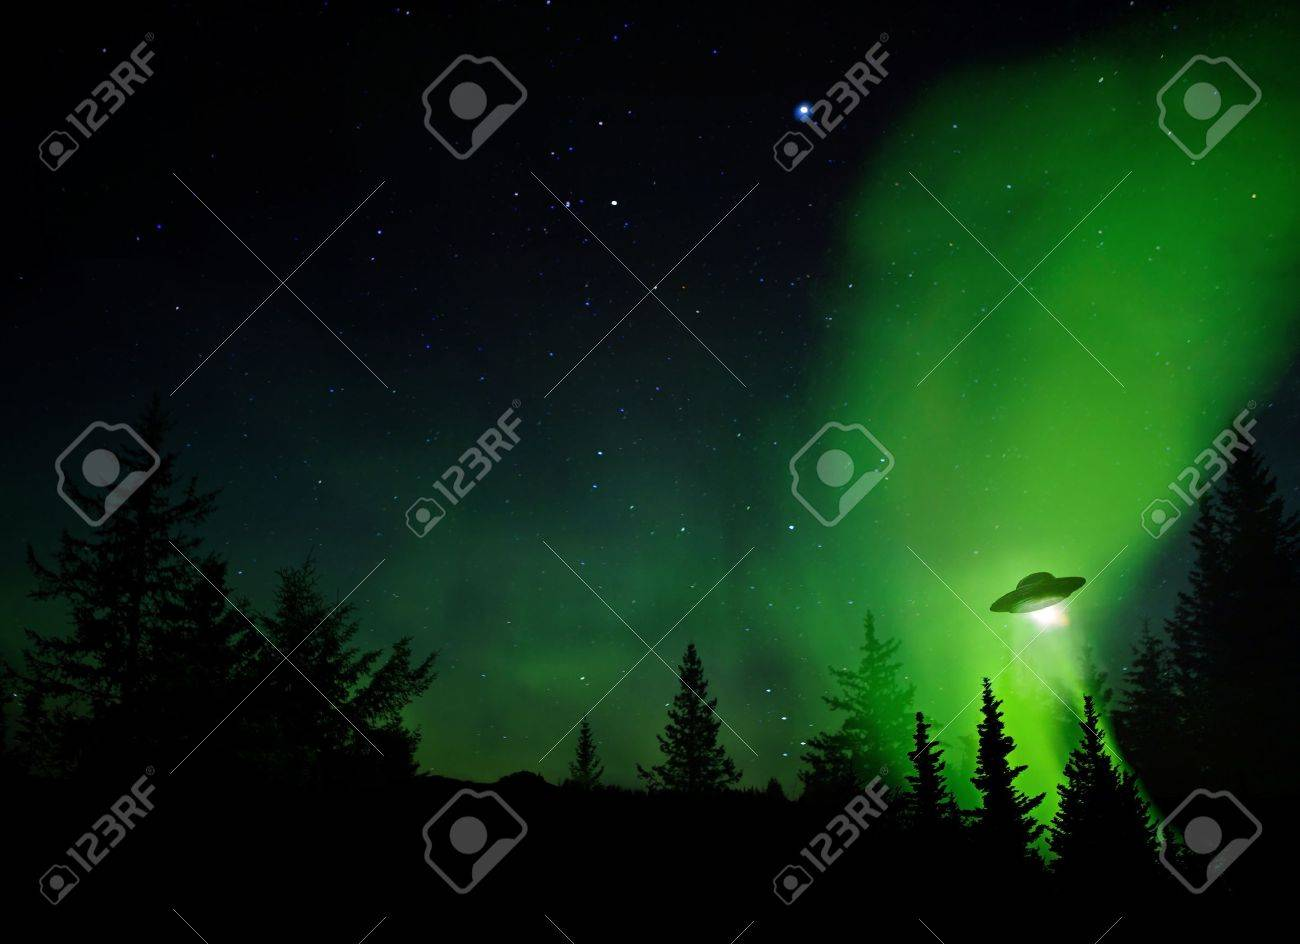 UFO landing at night in the forest with trees and stars. Stock Photo - 15847361